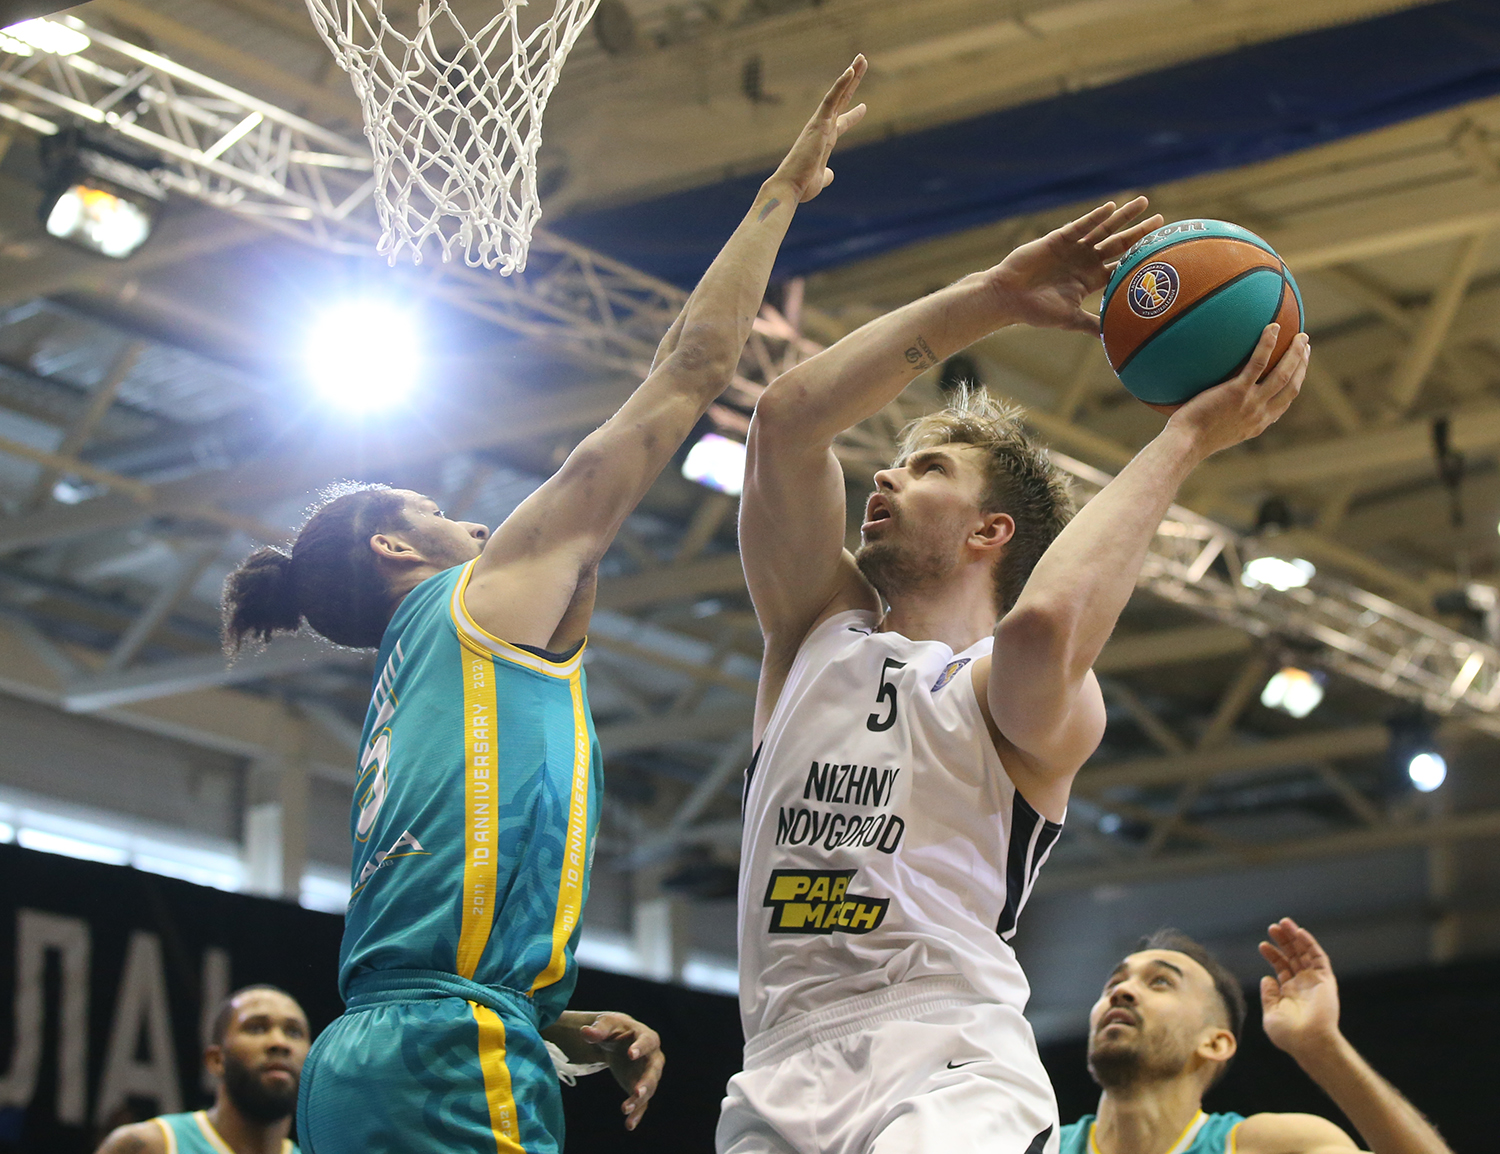 Nizhny come back from -22 and defeat Astana in Andrei Vorontsevich debut